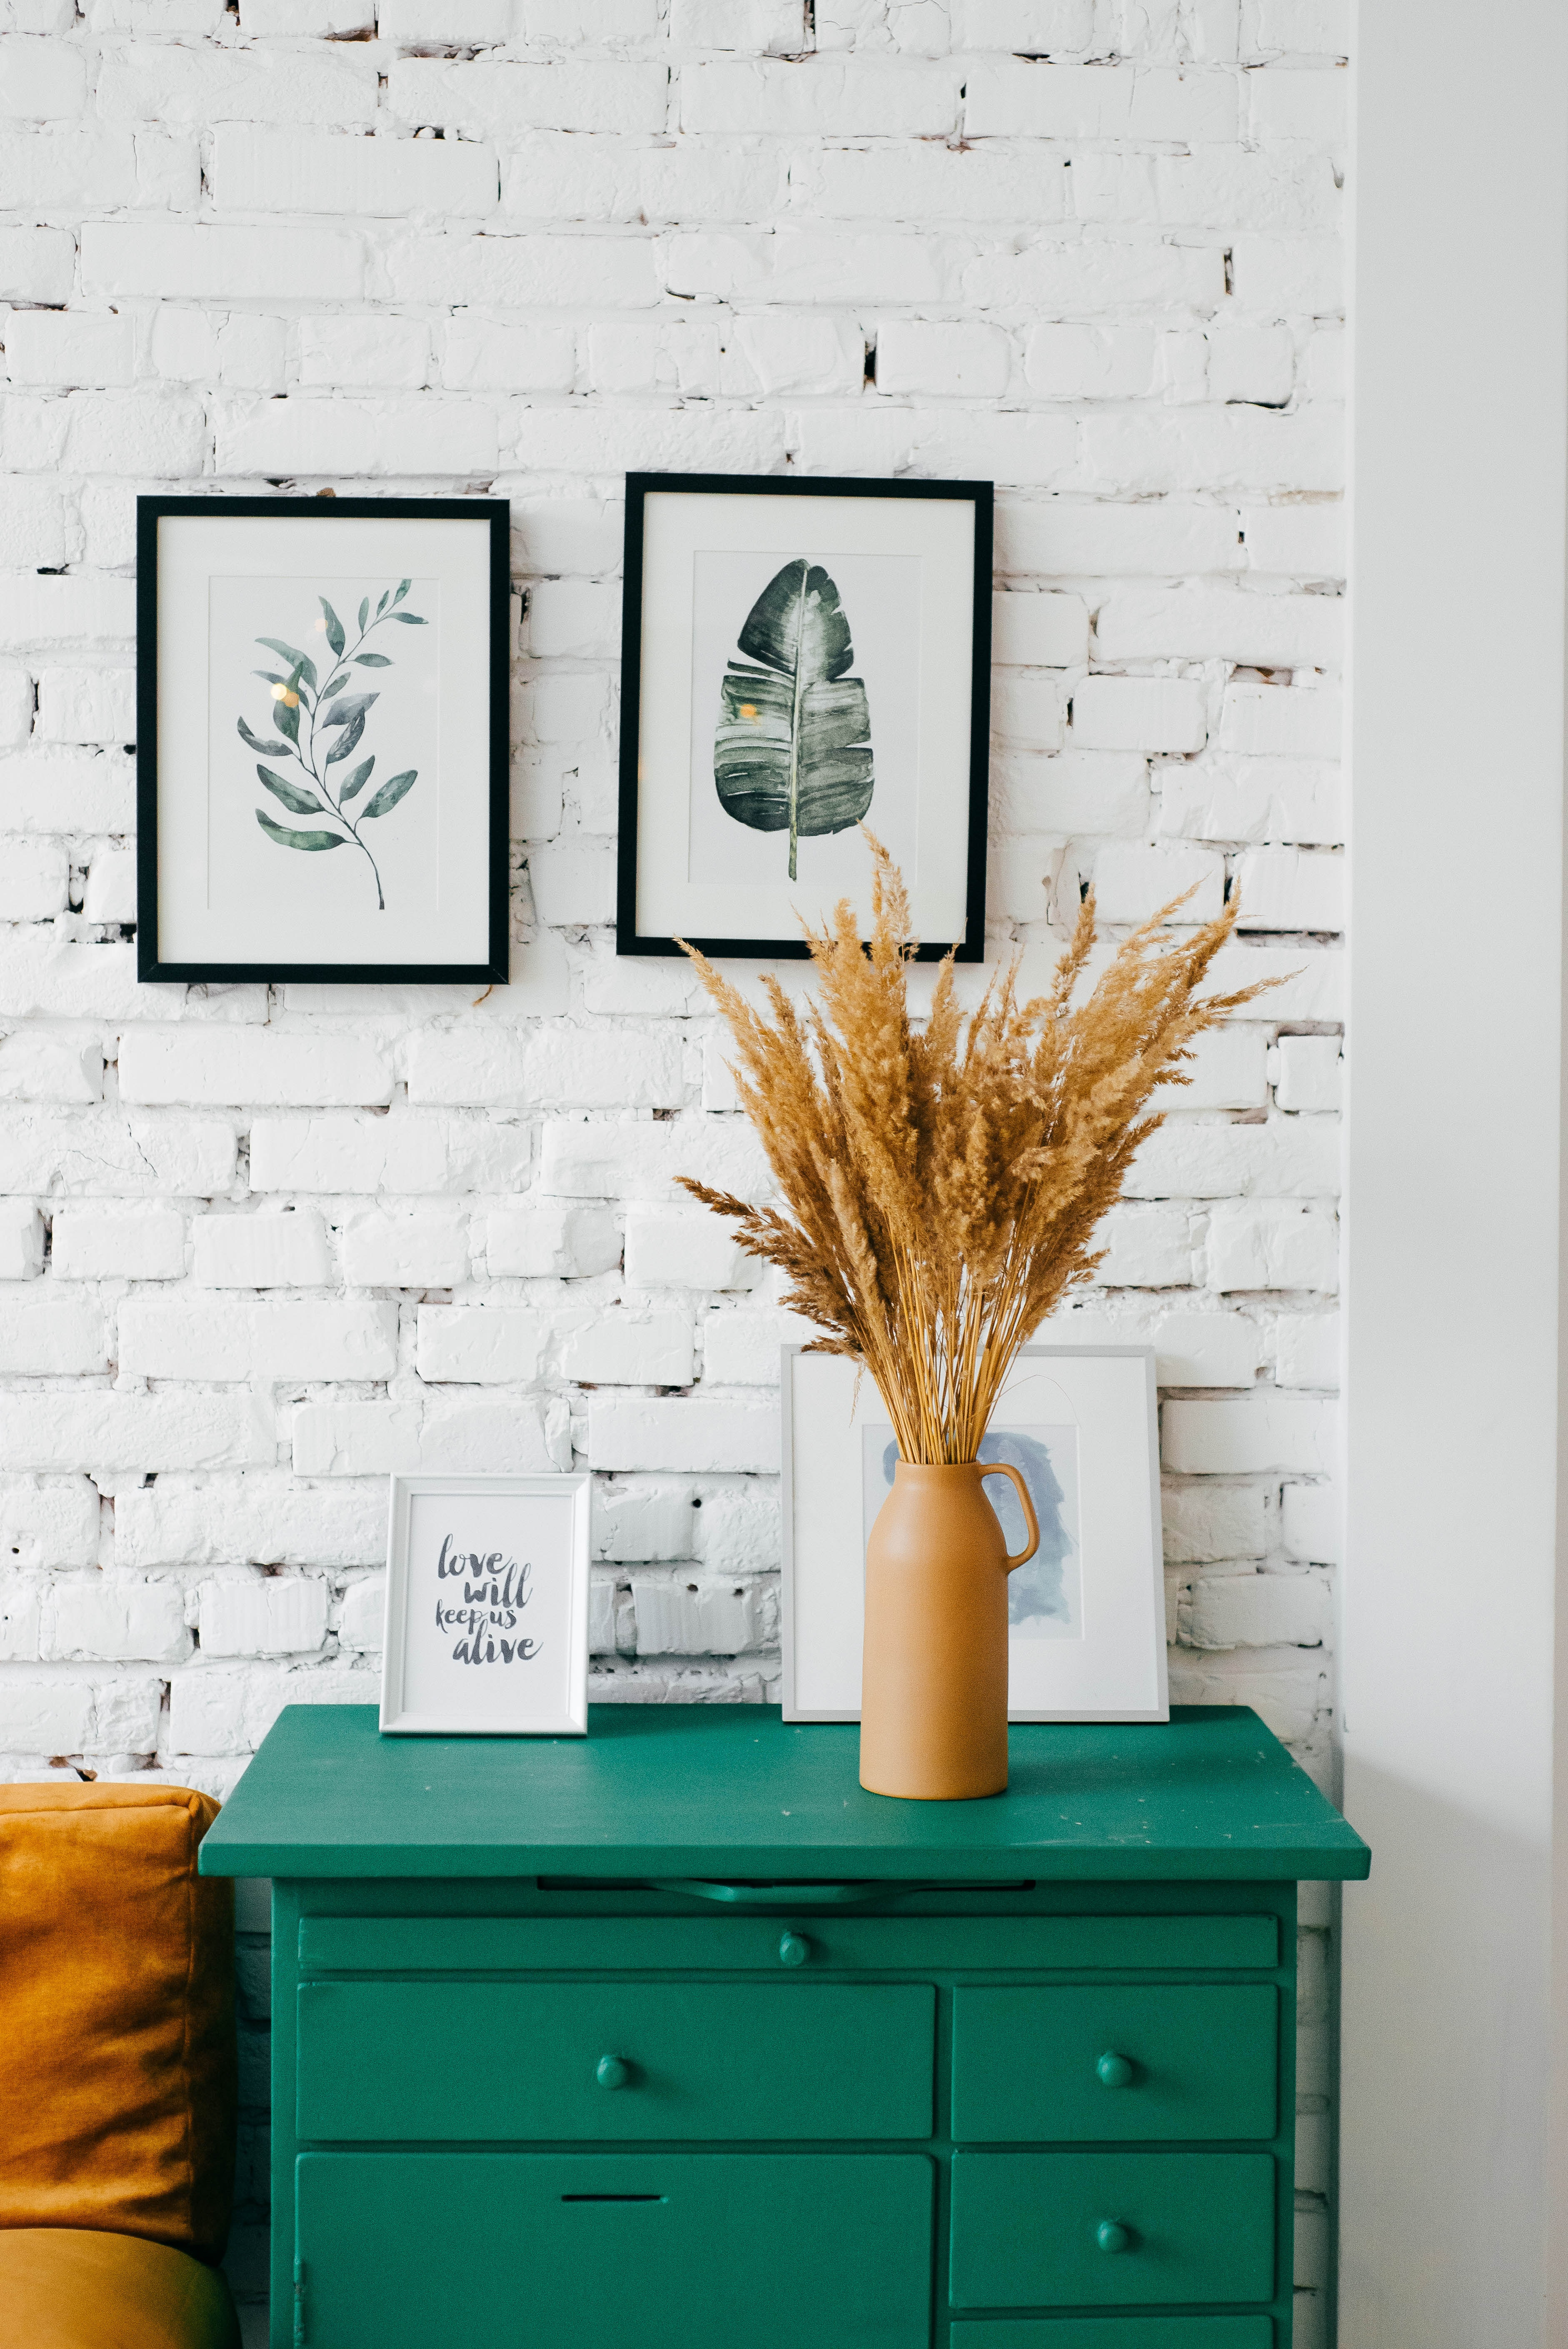 Home Design Trends For The New Year Part 2 What S In And Out For